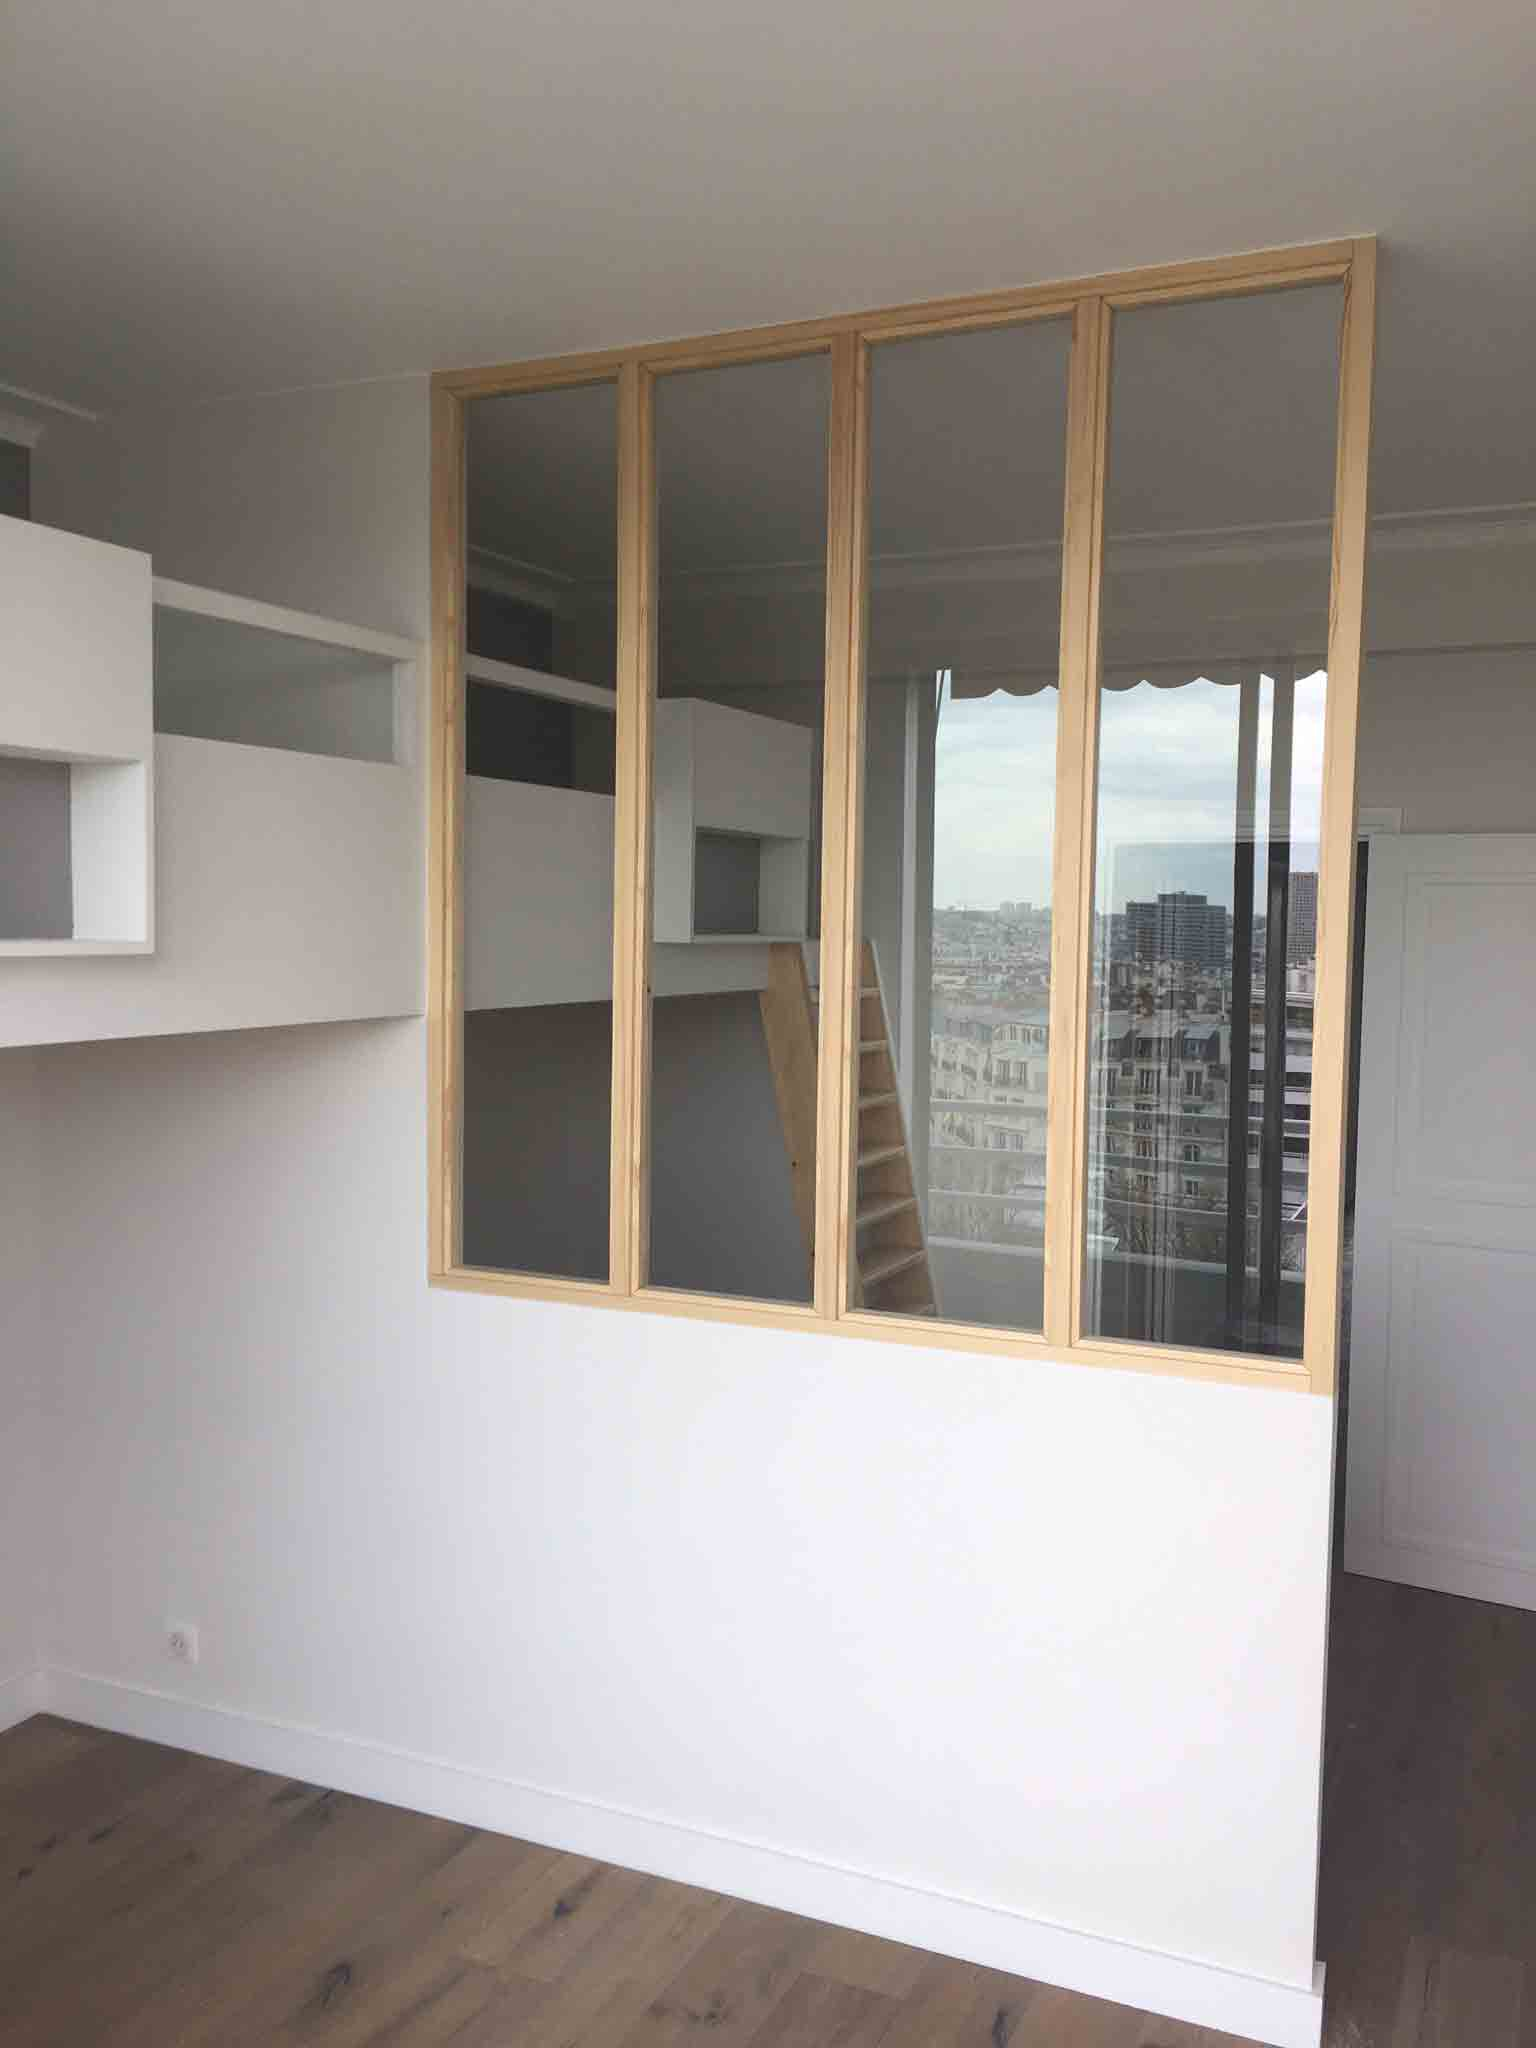 Baty r construction et am nagement int rieur en bois sur for Verriere interieur bois